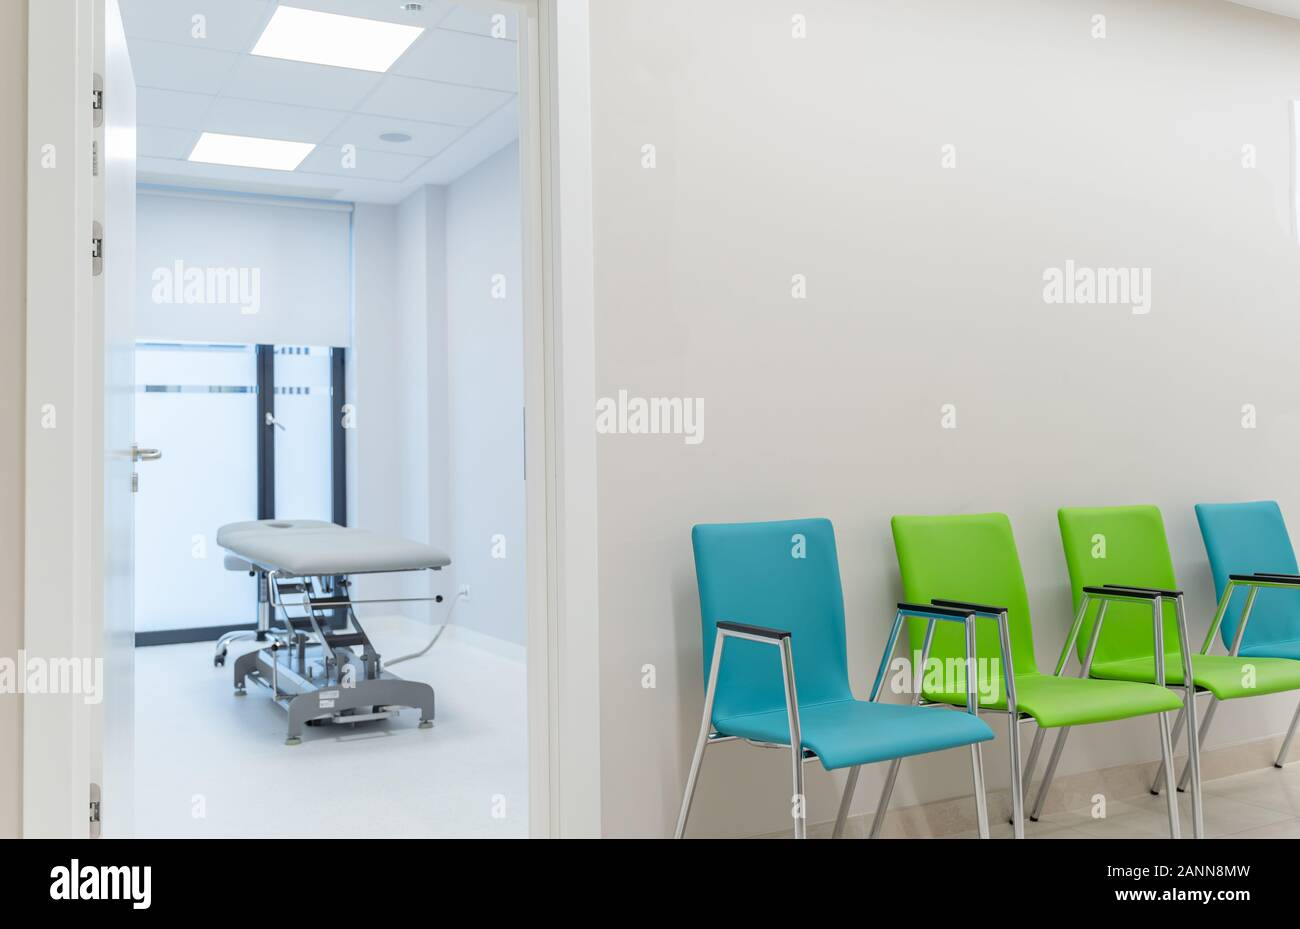 Esthetic And Clean Modern Private Massage Skin And Nail Care Salon Massage Table In Clinic Room Visible From Waiting Room Stock Photo Alamy